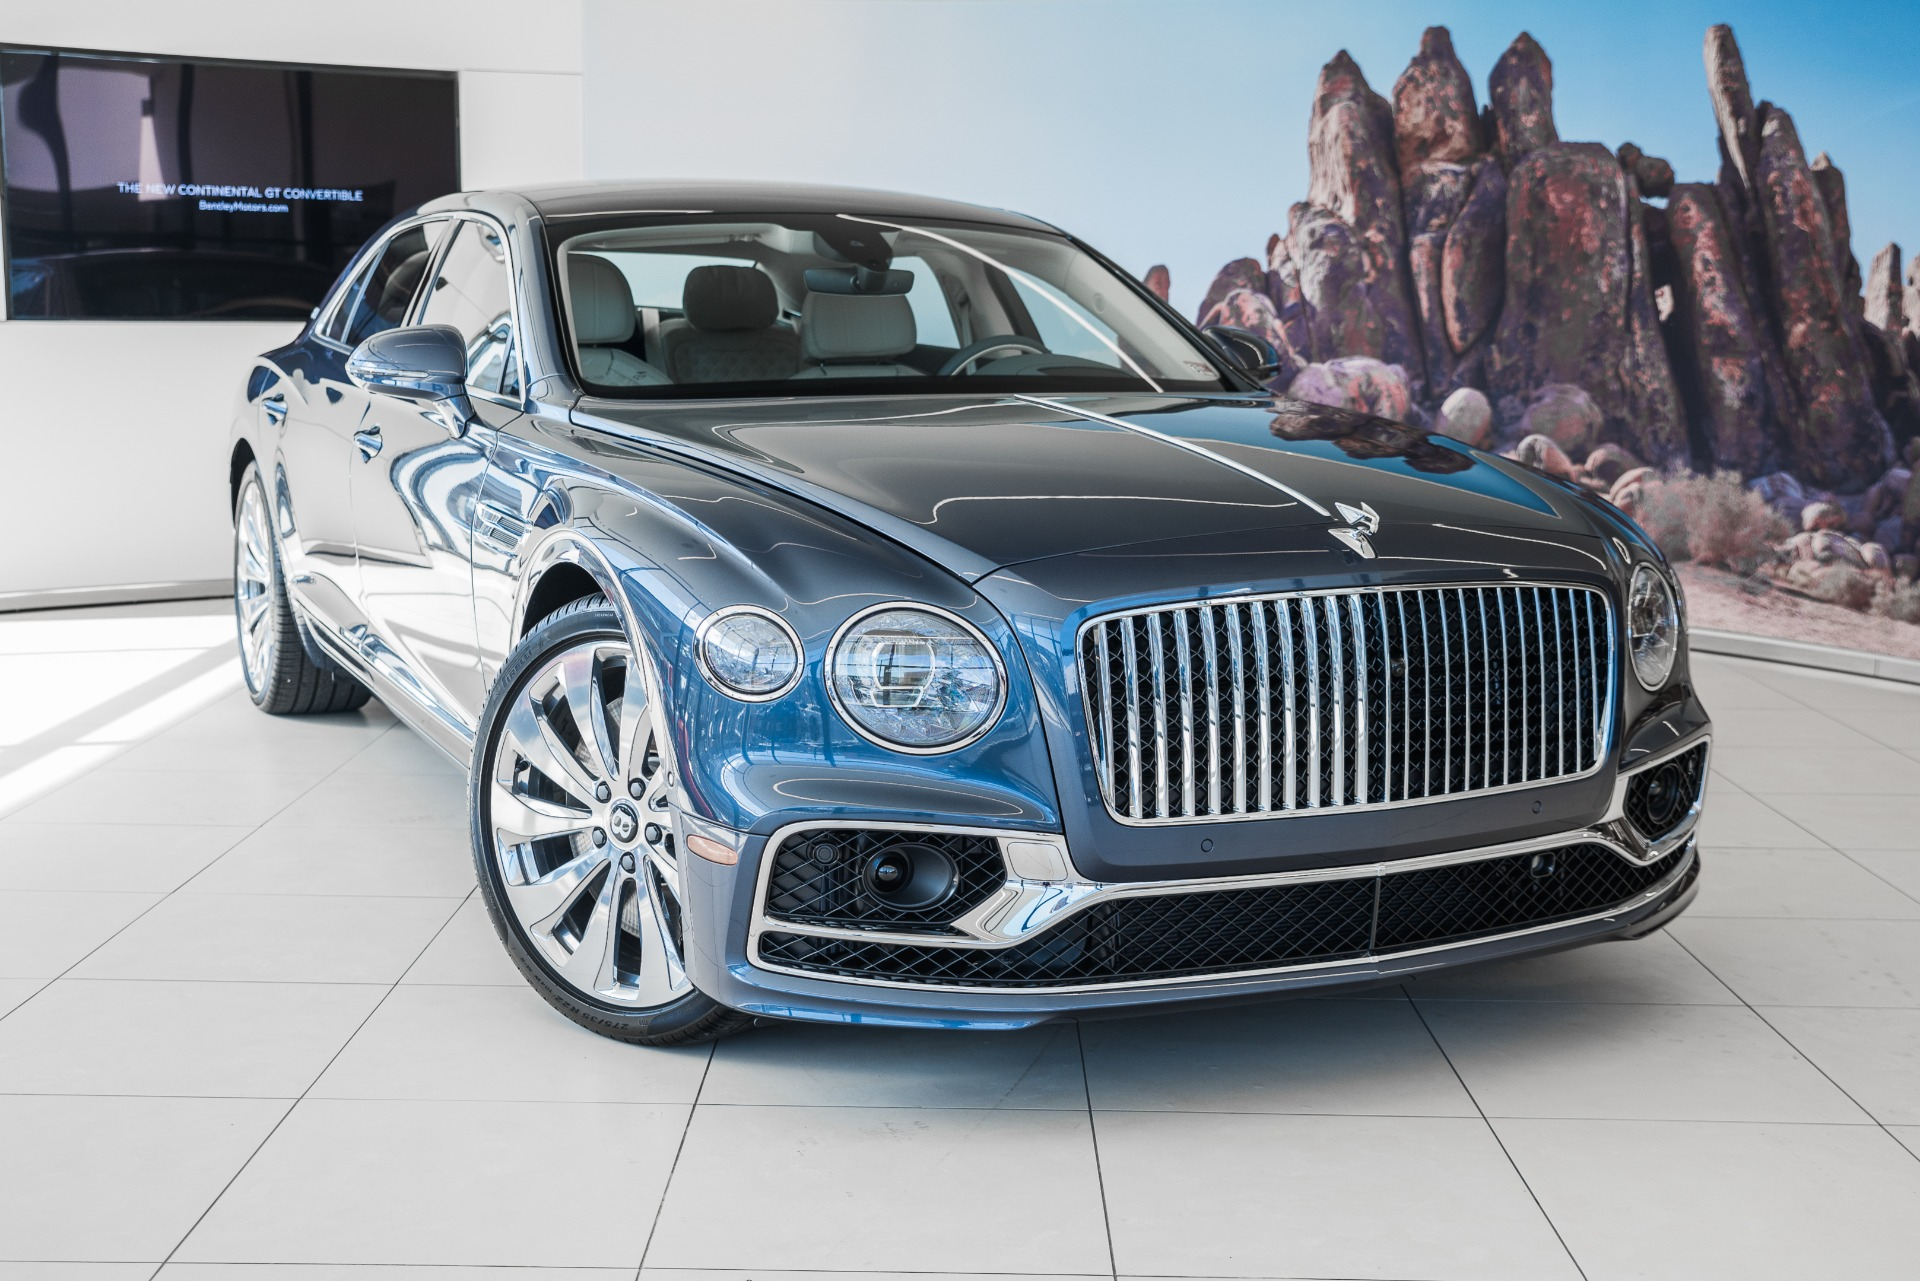 2020 Bentley Flying Spur W12 Stock 20n079821 For Sale Near Vienna Va Va Bentley Dealer For Sale In Vienna Va 20n079821 Exclusive Automotive Group